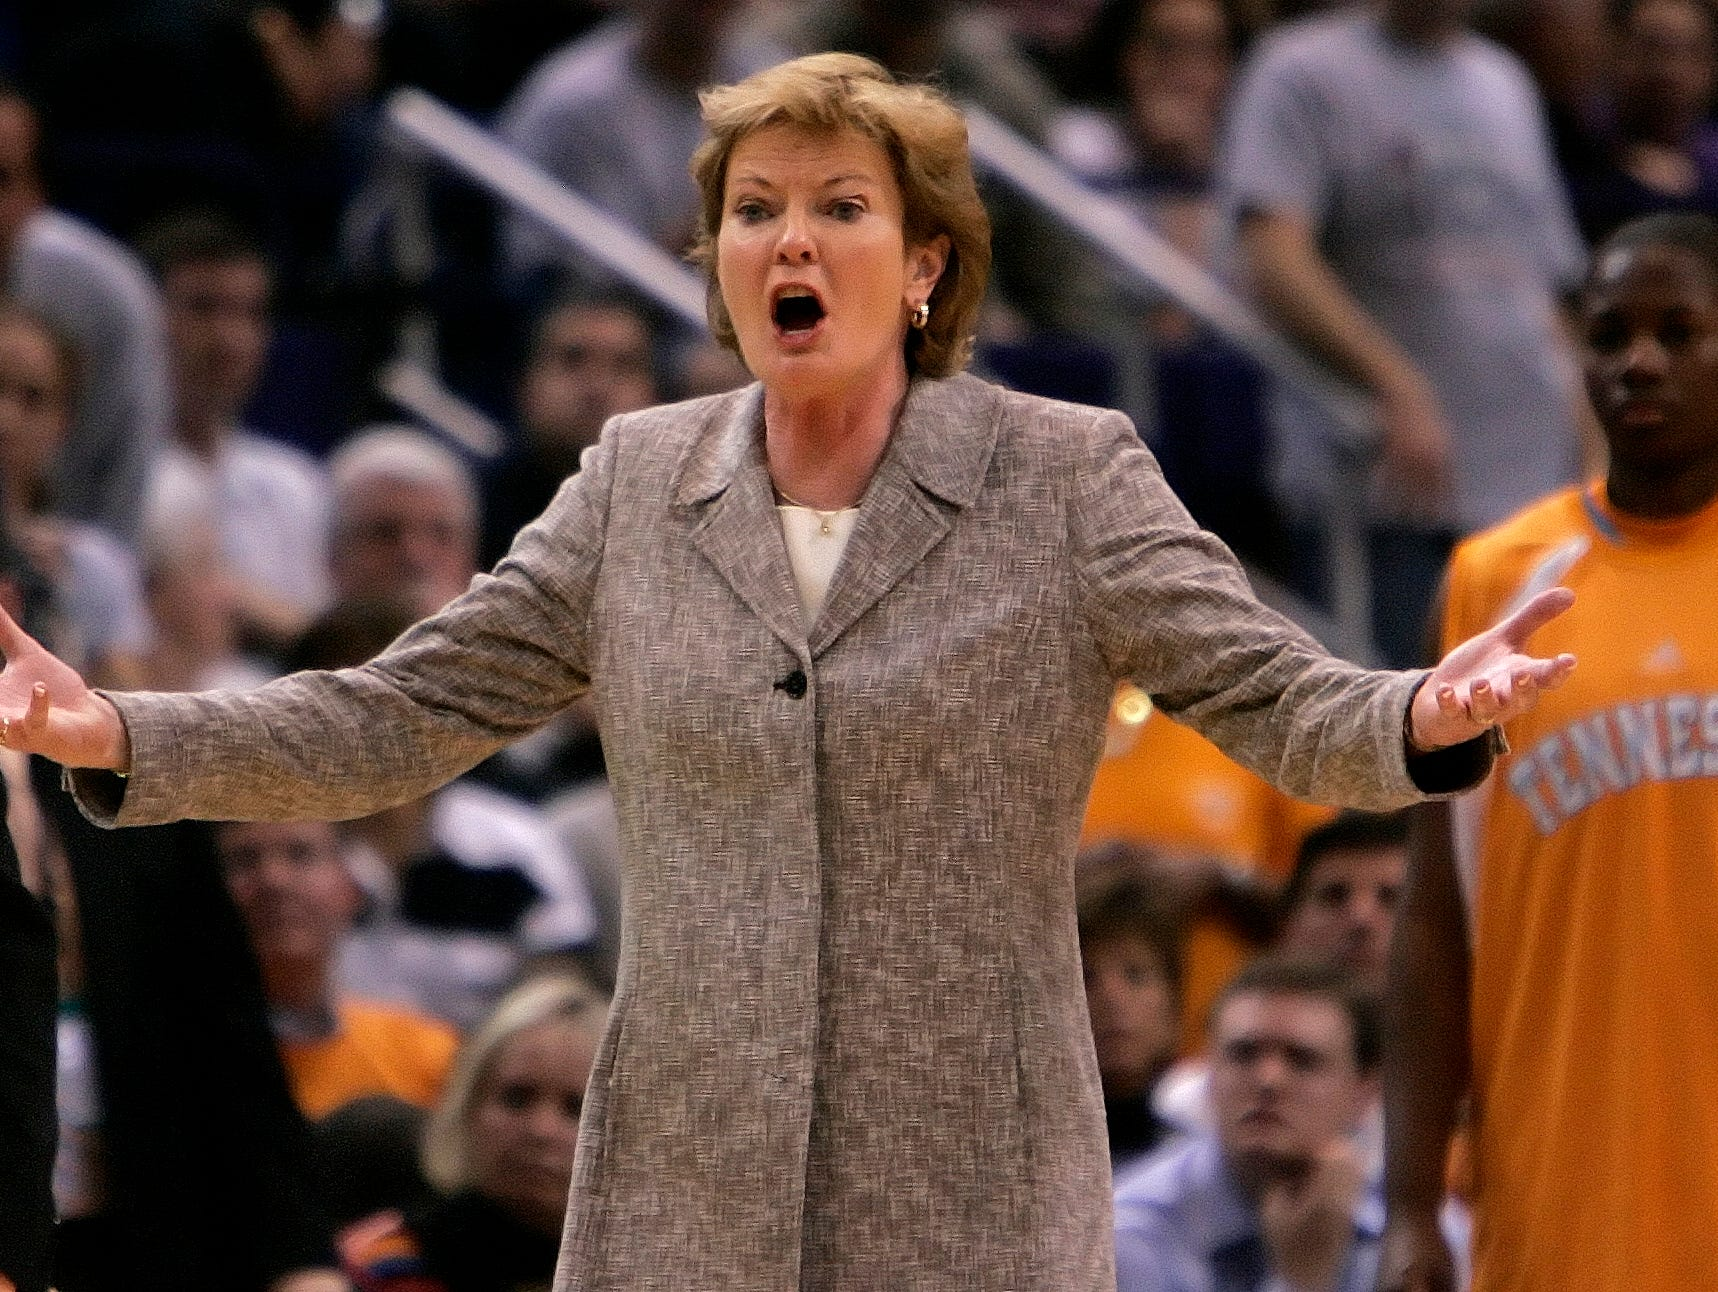 The Pat Summitt Foundation will be releasing video tributes to the former Tennessee women's basketball coach on Wednesday to mark the anniversary of her death.